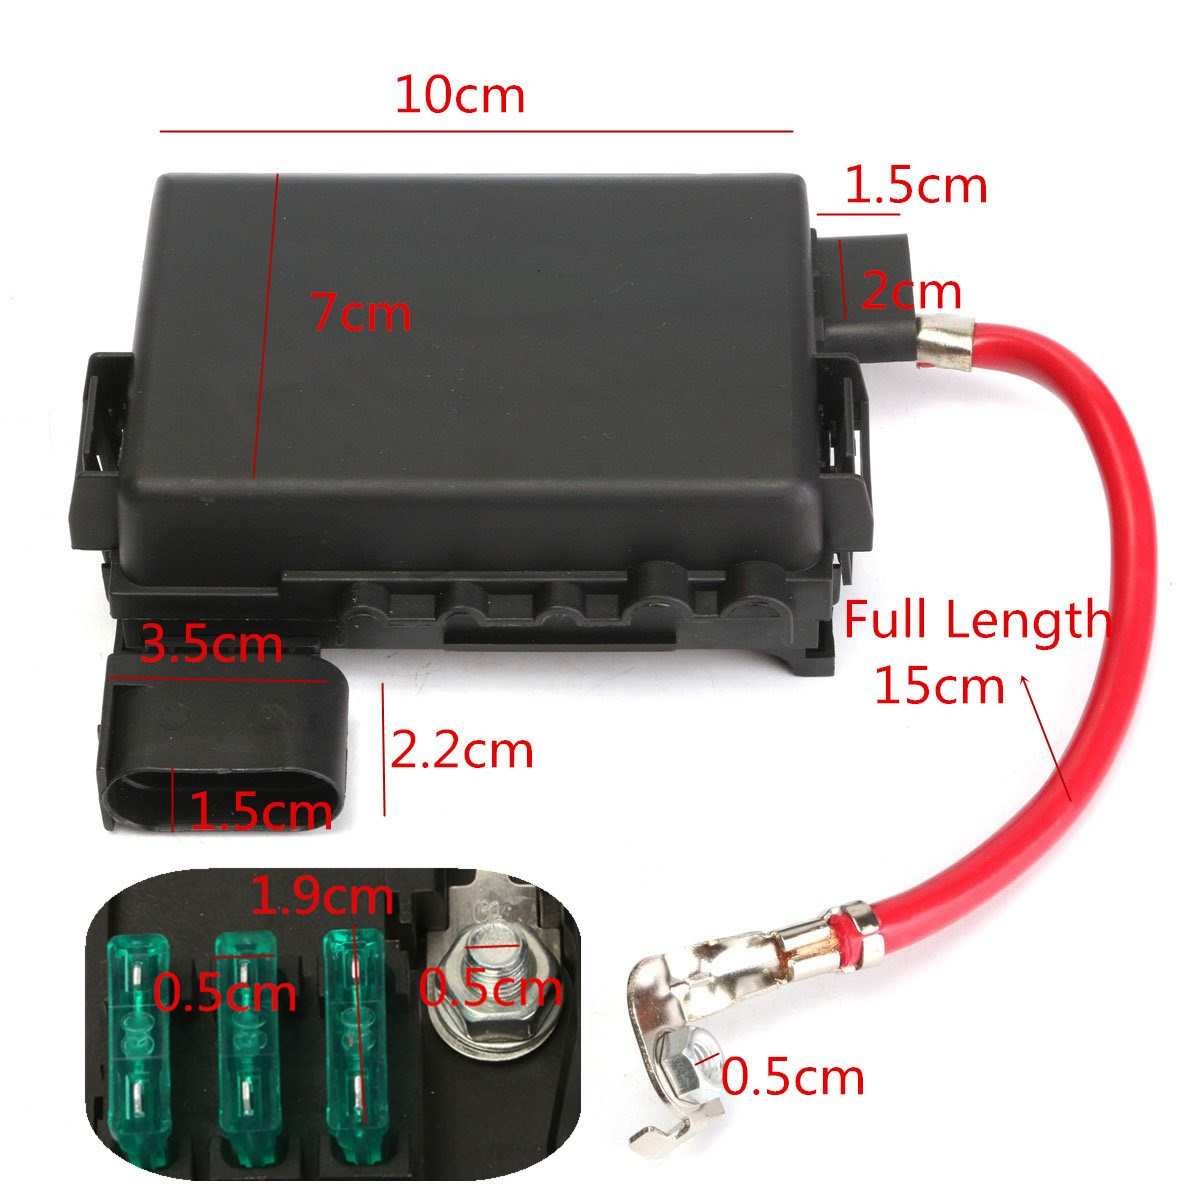 2003 Vw Jetta Battery Fuse Box Wiring Library Terminal Insurance Tablets For Golf Mk4 Diagram